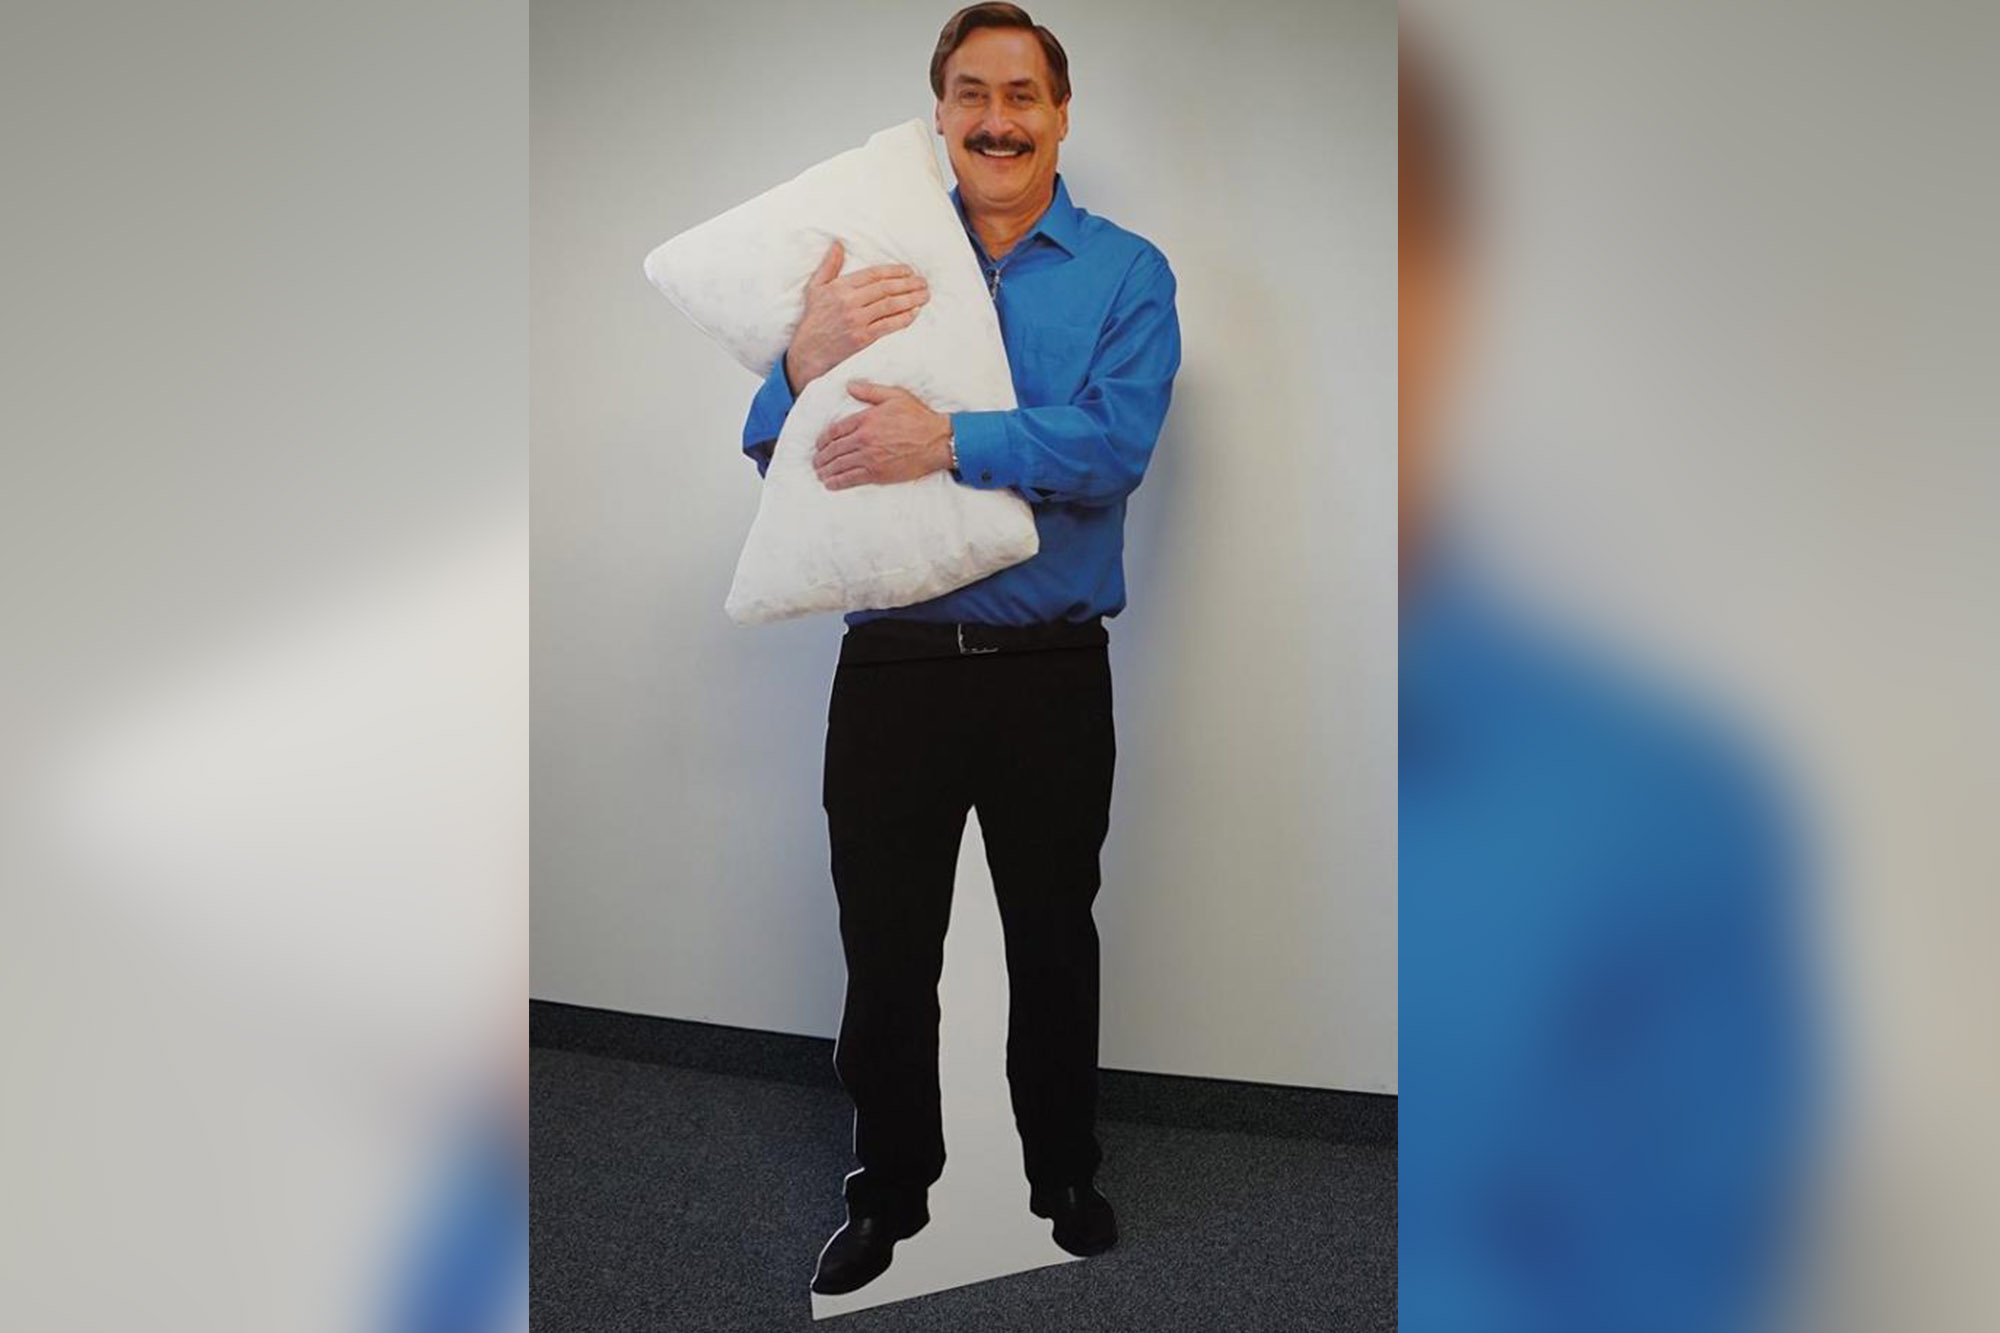 man hugging pillow in the cold was a